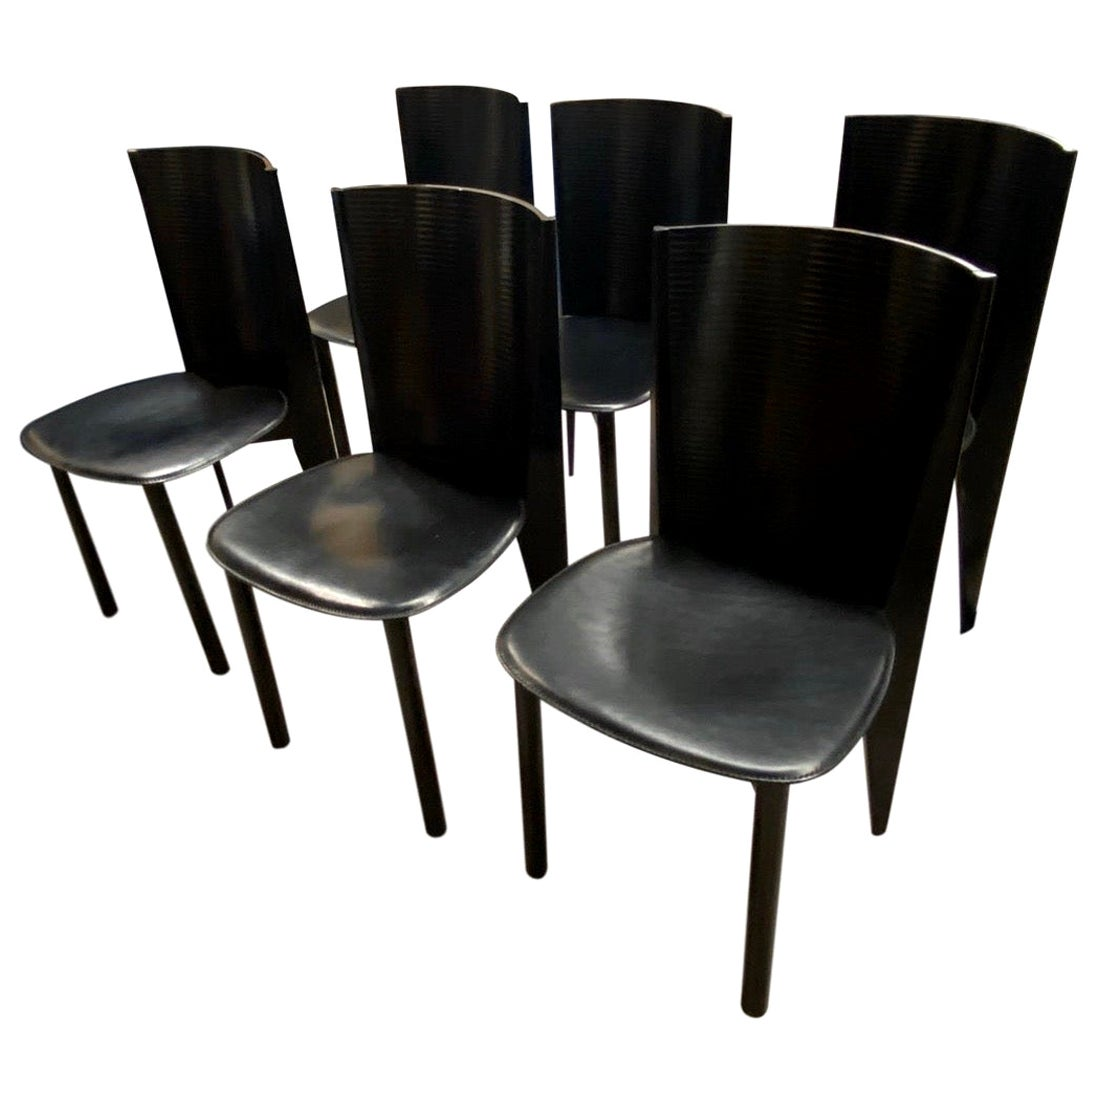 Calligaris Made in Italy Set of Six Black Dining Chairs